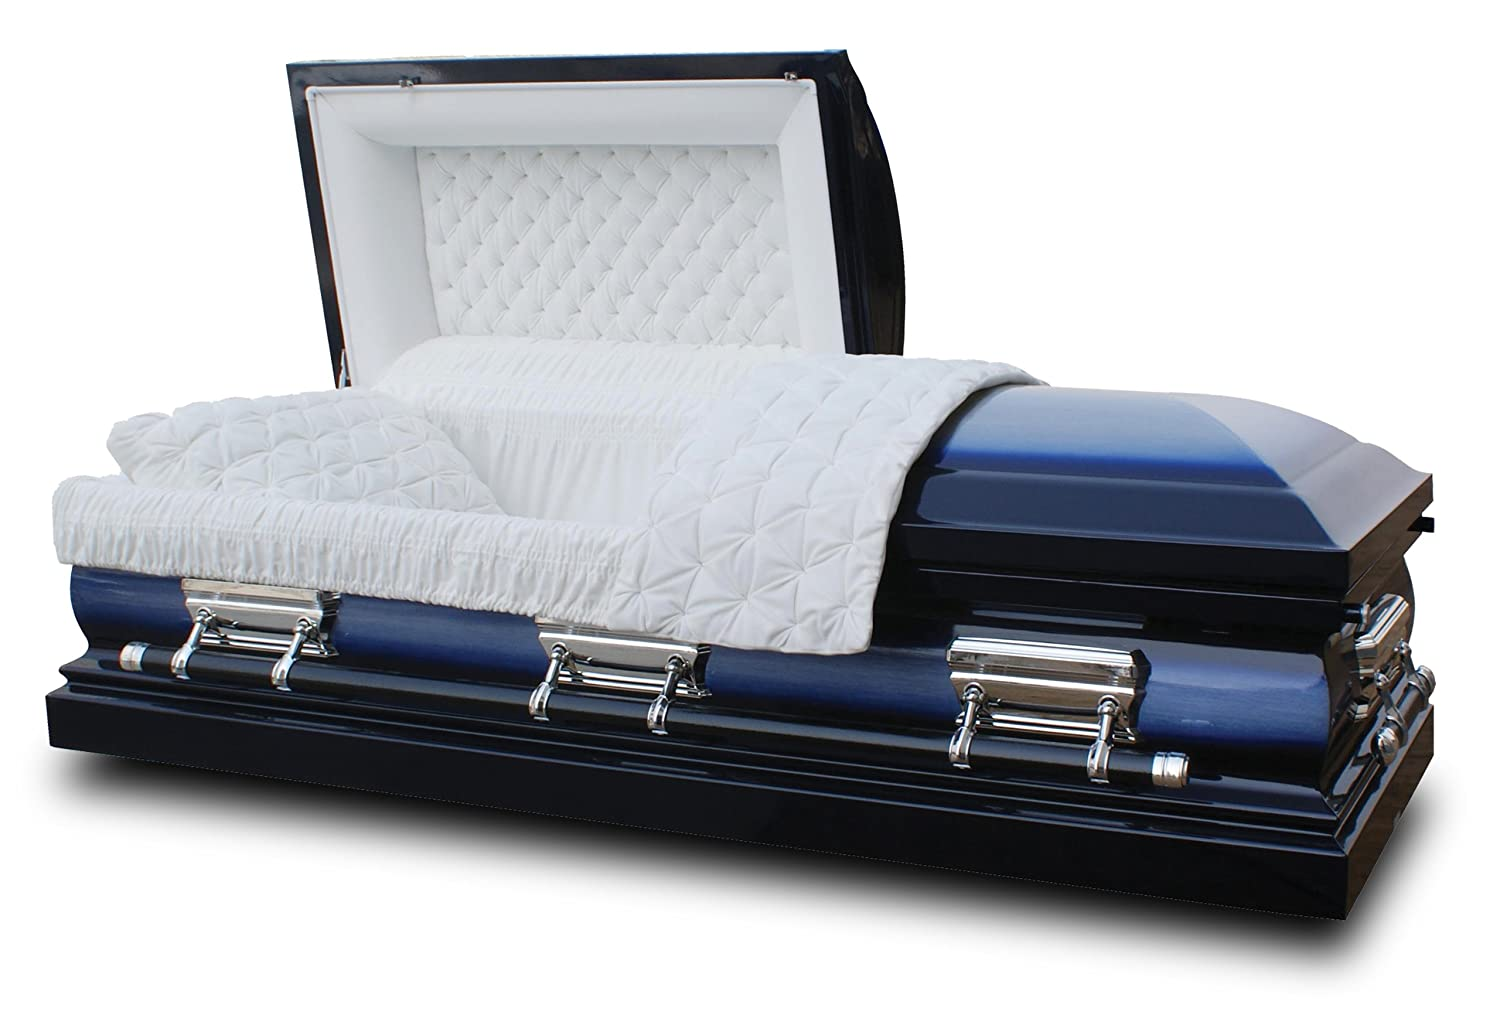 Amazon com  Star Legacy Deluxe Casket  Midnight Blue  Health   Personal Care. Amazon com  Star Legacy Deluxe Casket  Midnight Blue  Health